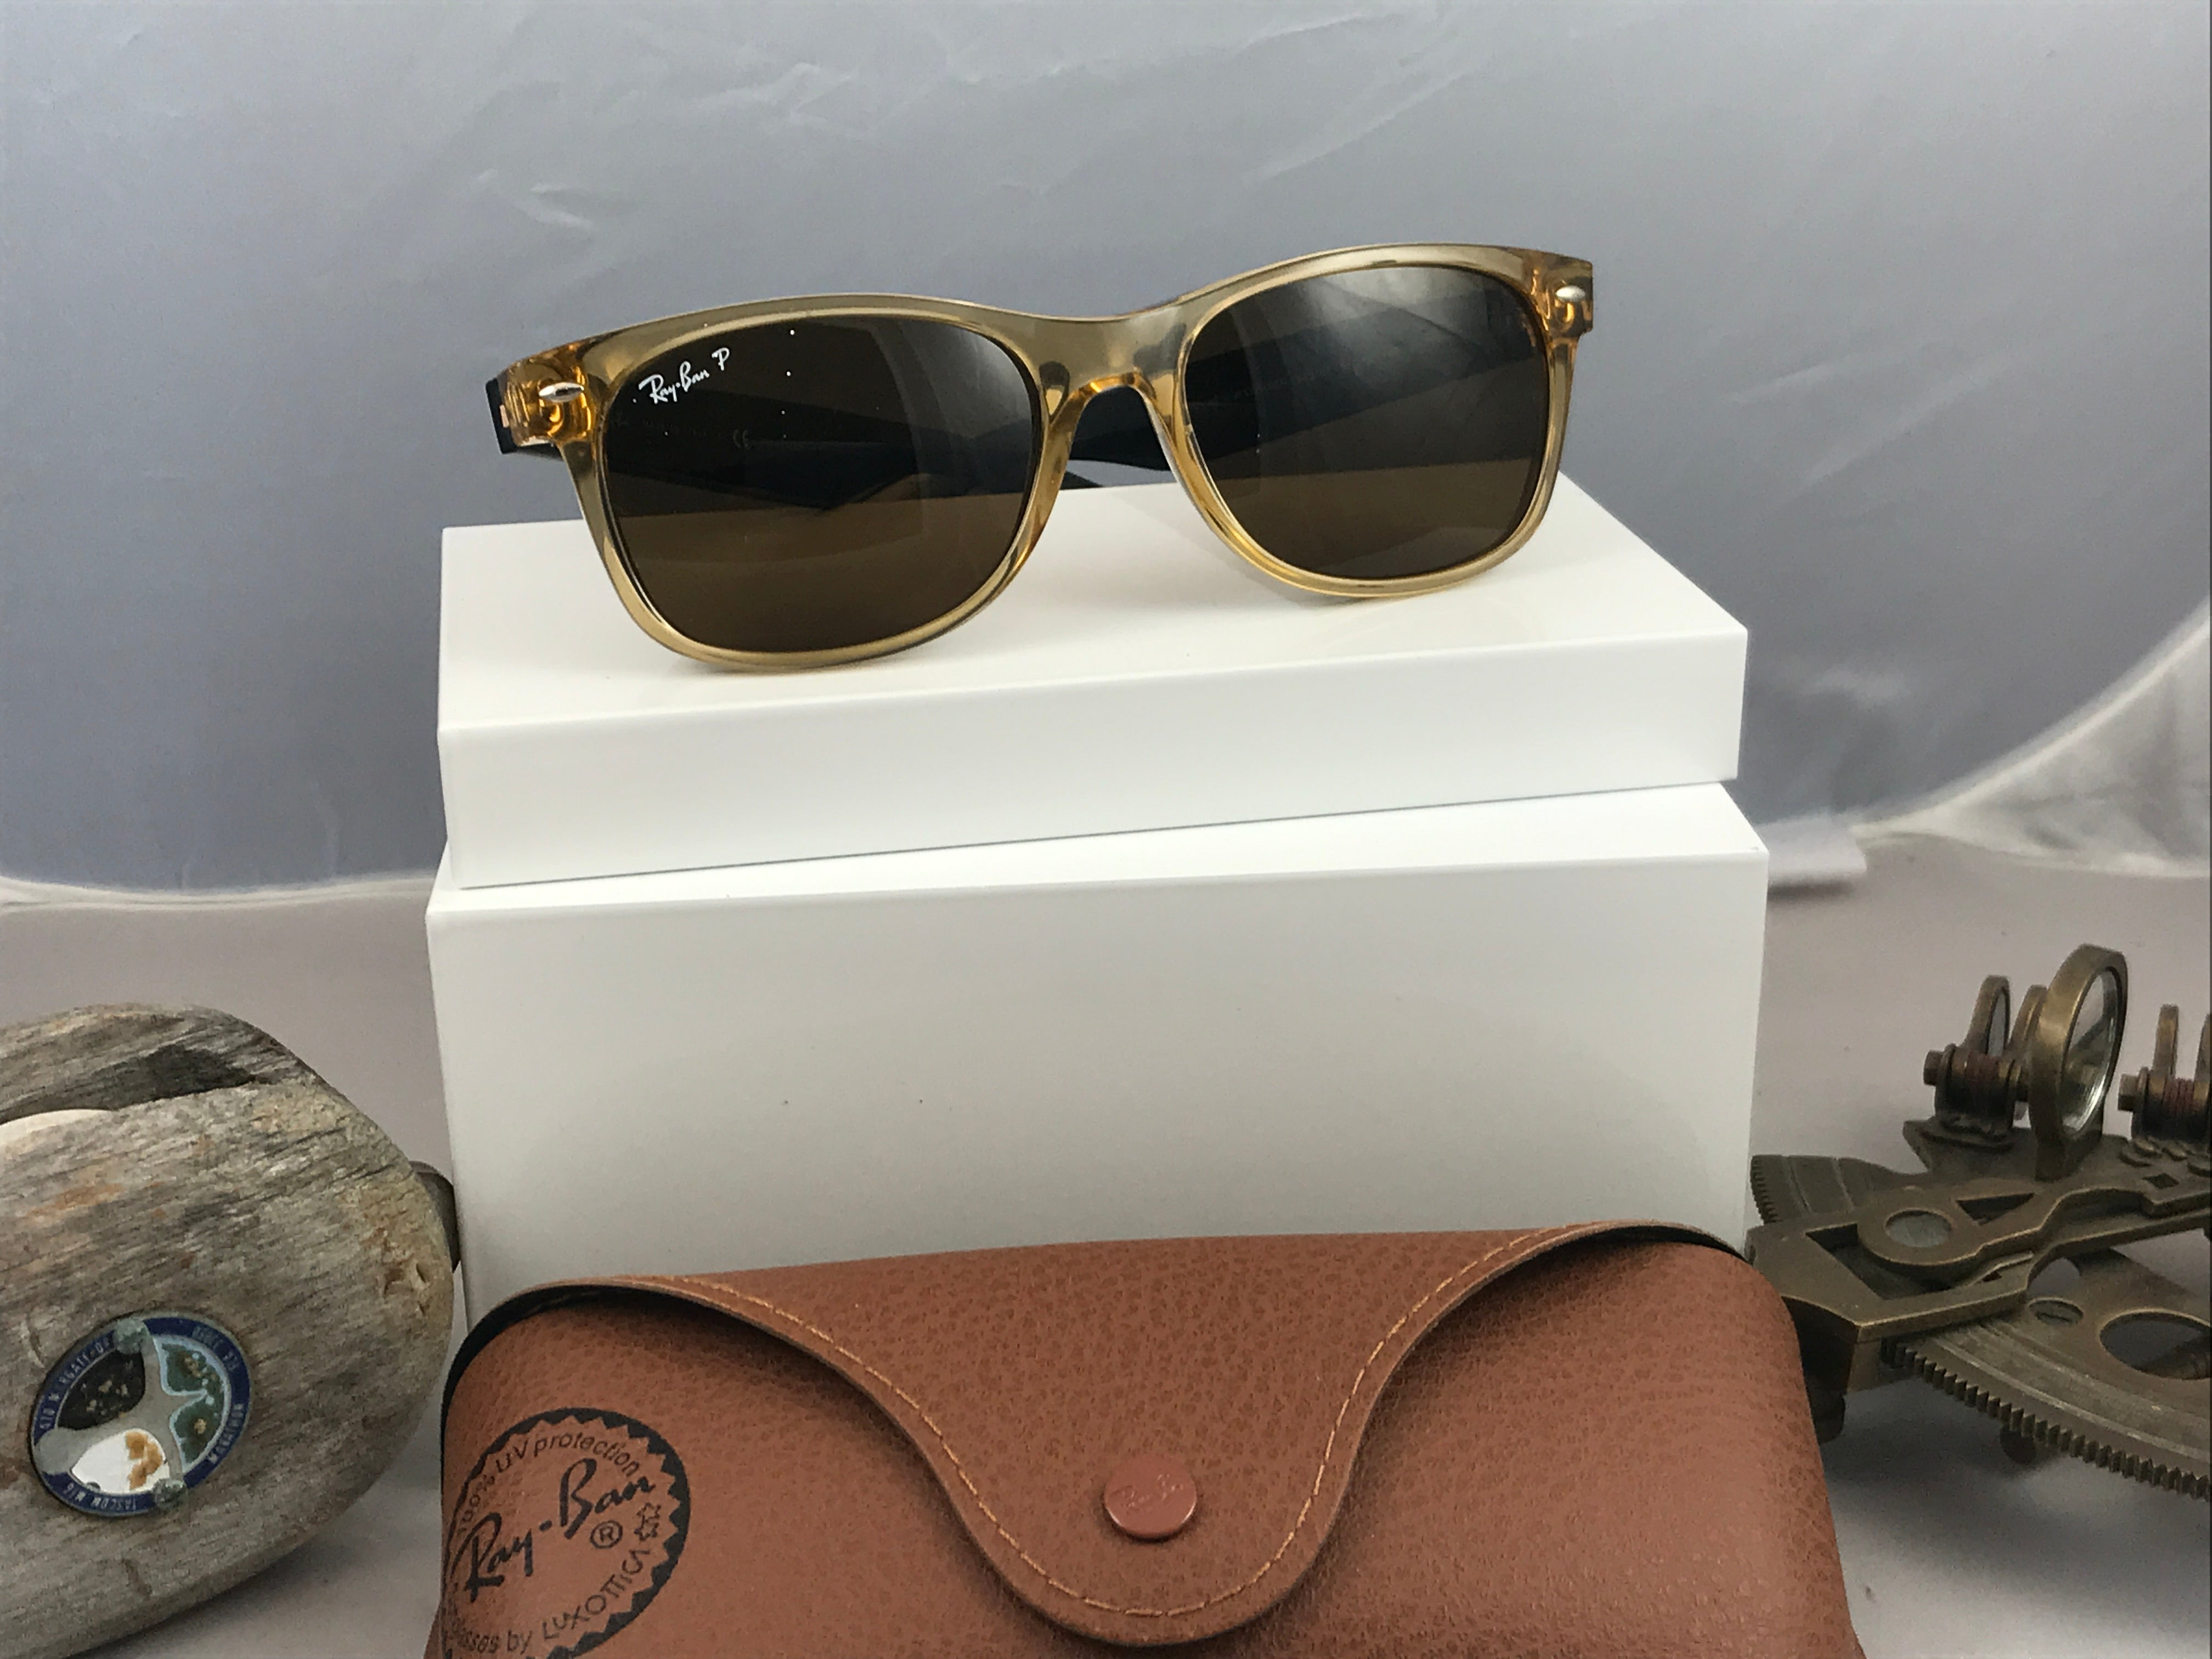 RayBan Sunglasses in 945/57 DME Code:2025